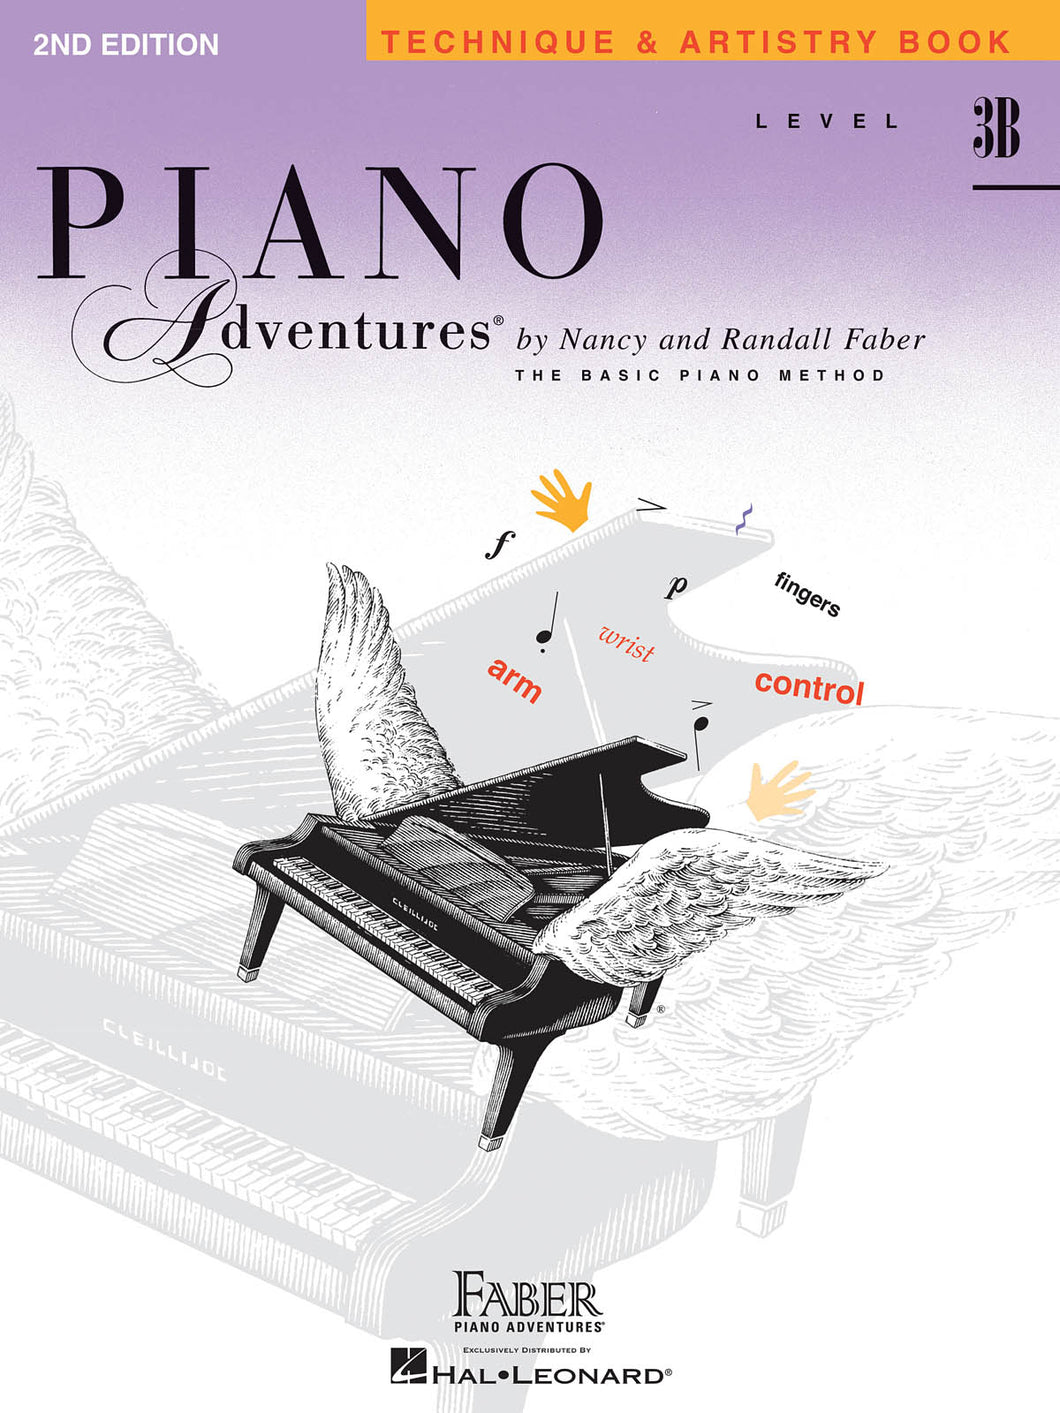 Faber Piano Adventures Level 3B Technique & Artistry